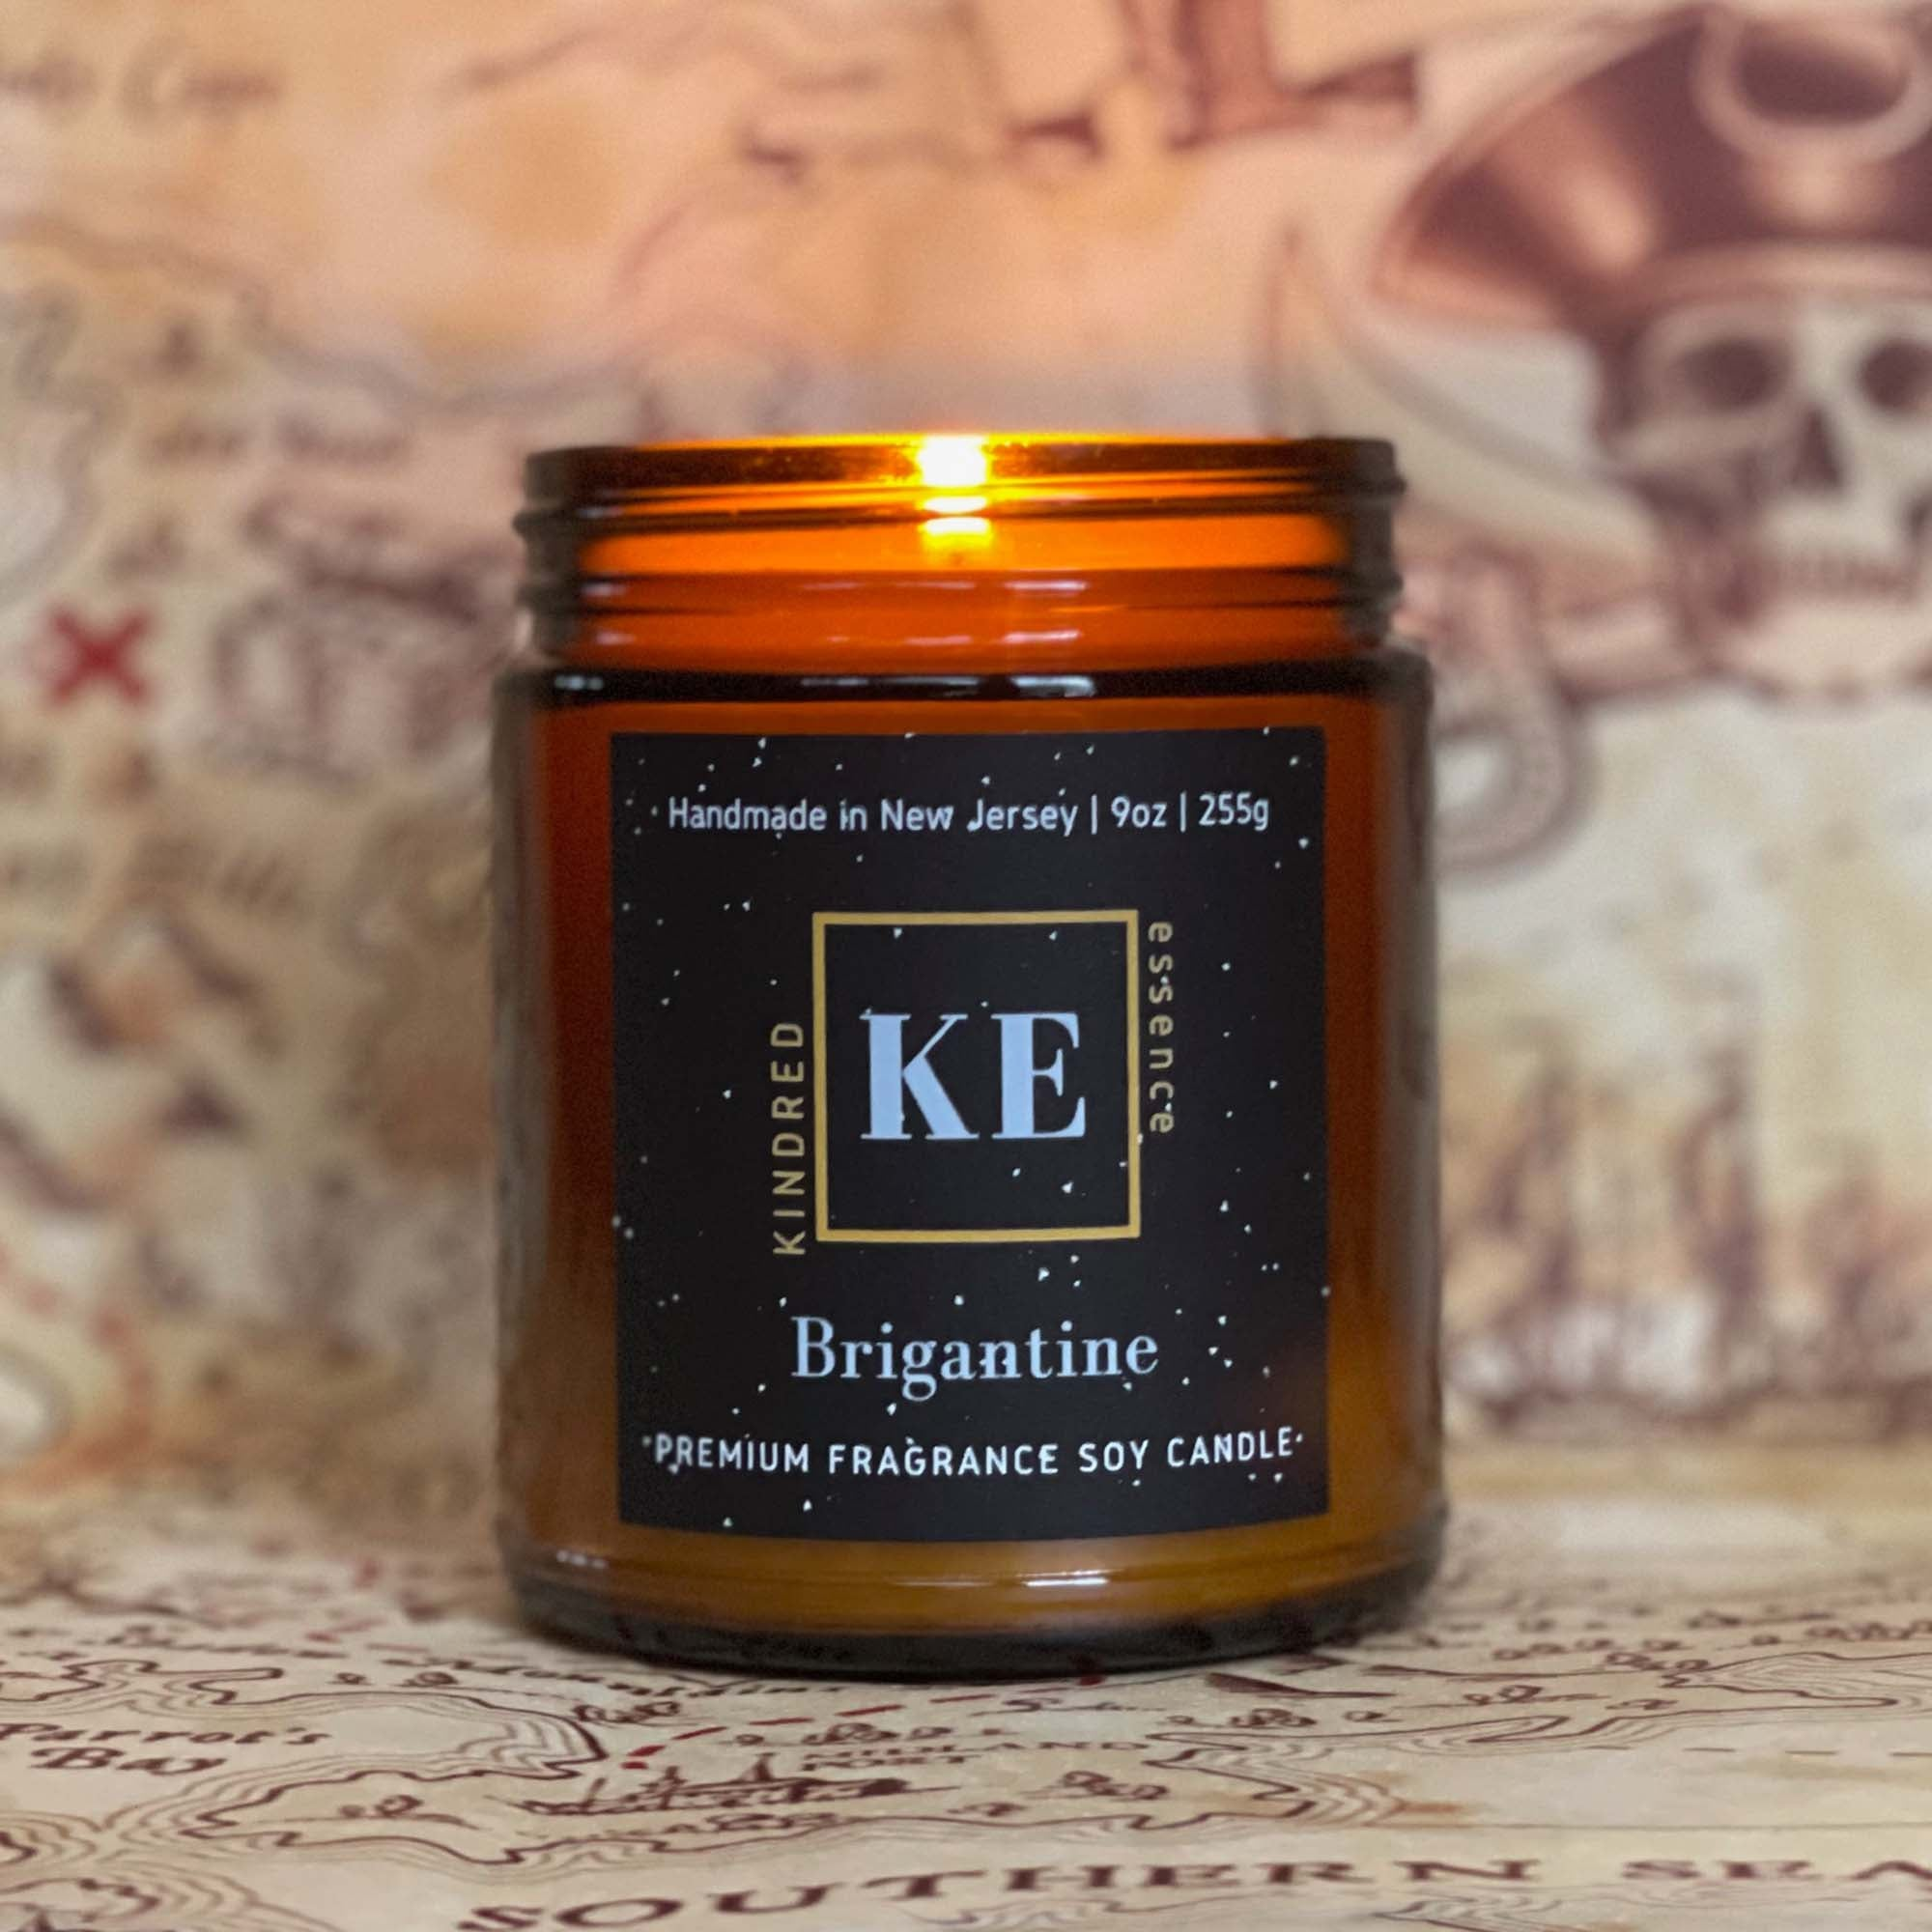 Brigantine Soy Candle - Behind the Name